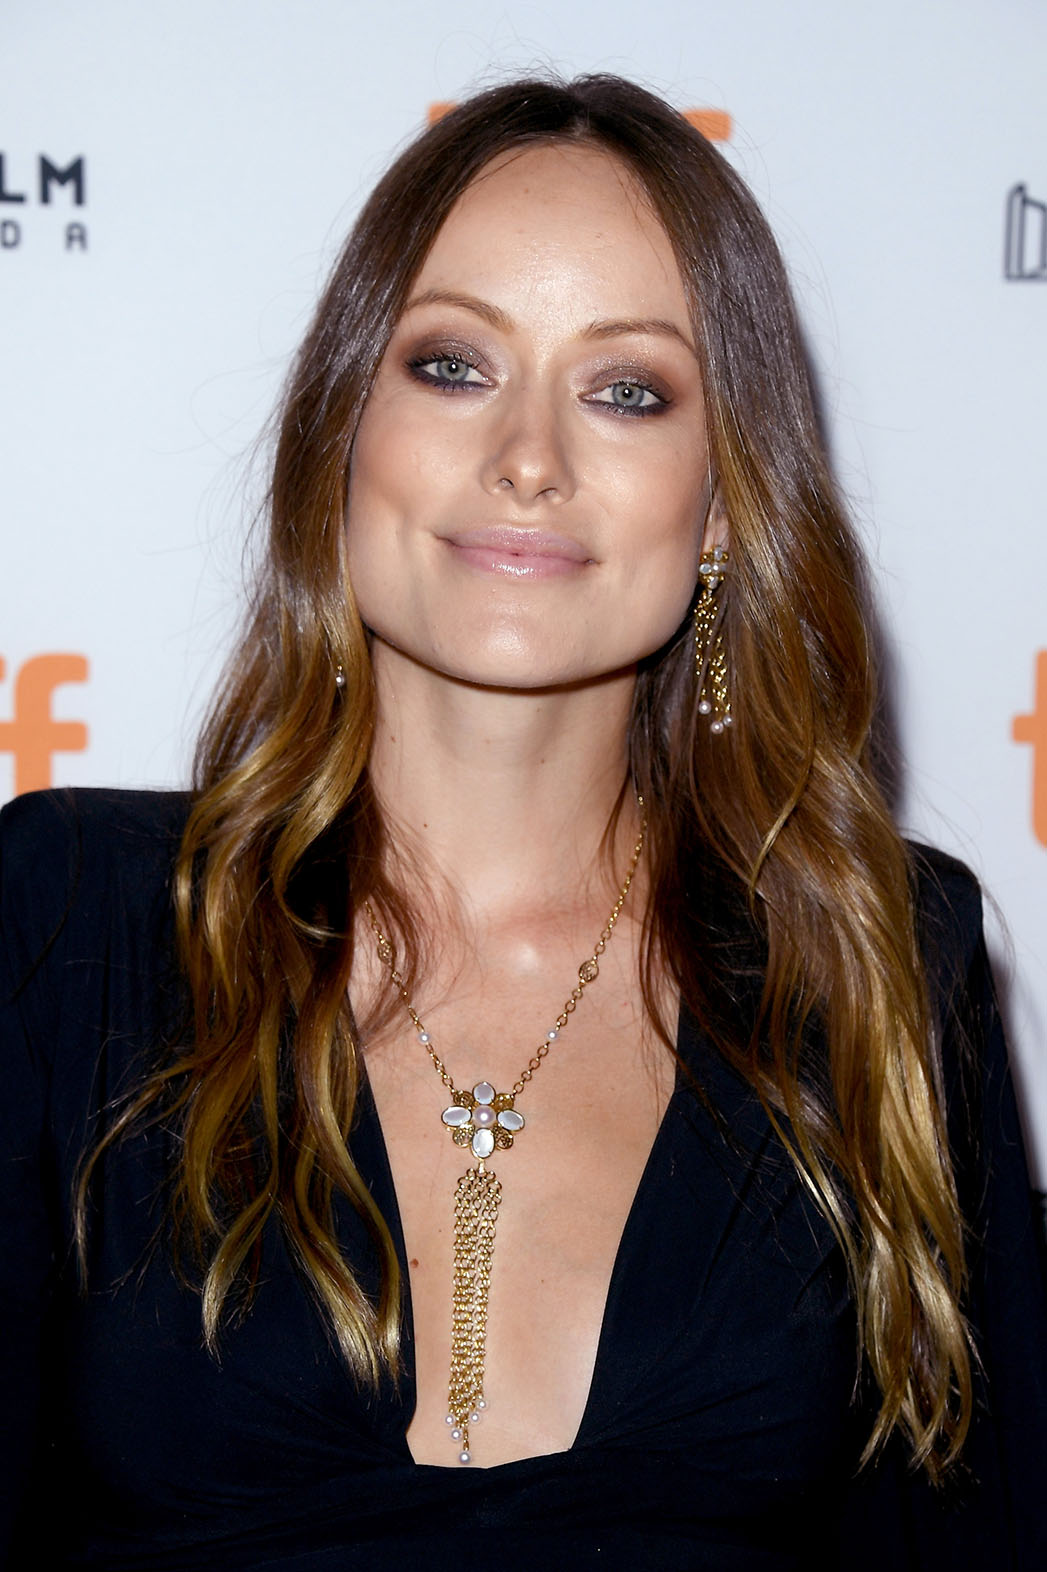 Olivia Wilde Profile And New Pictures 2013: Casting Gotham City Sirens!